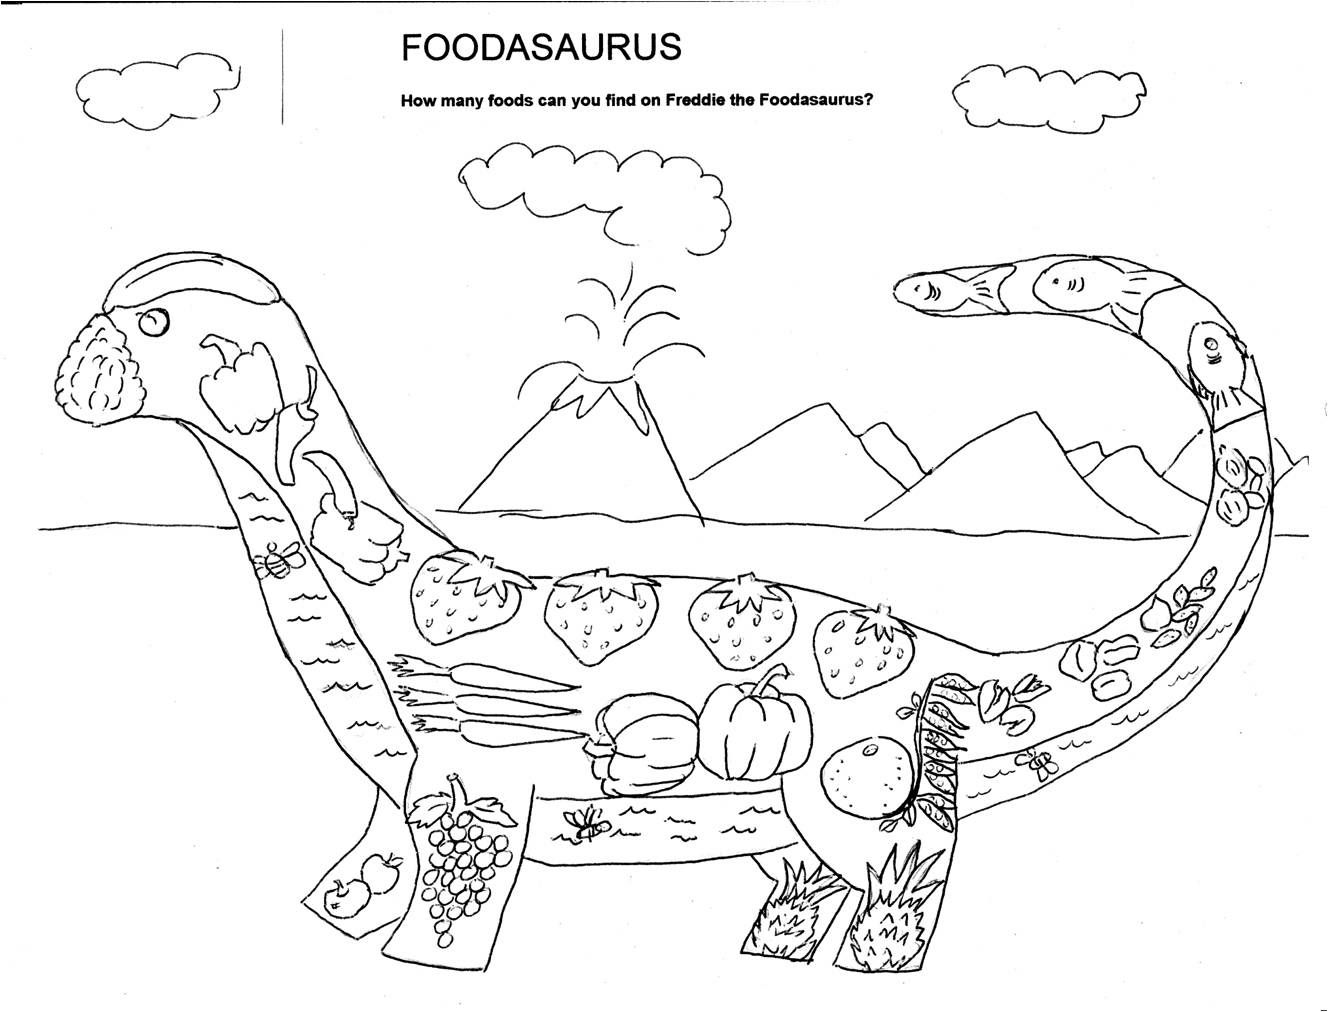 5 food groups coloring pages food pyramid with healthy and fresh coloring pages food 5 coloring pages groups food